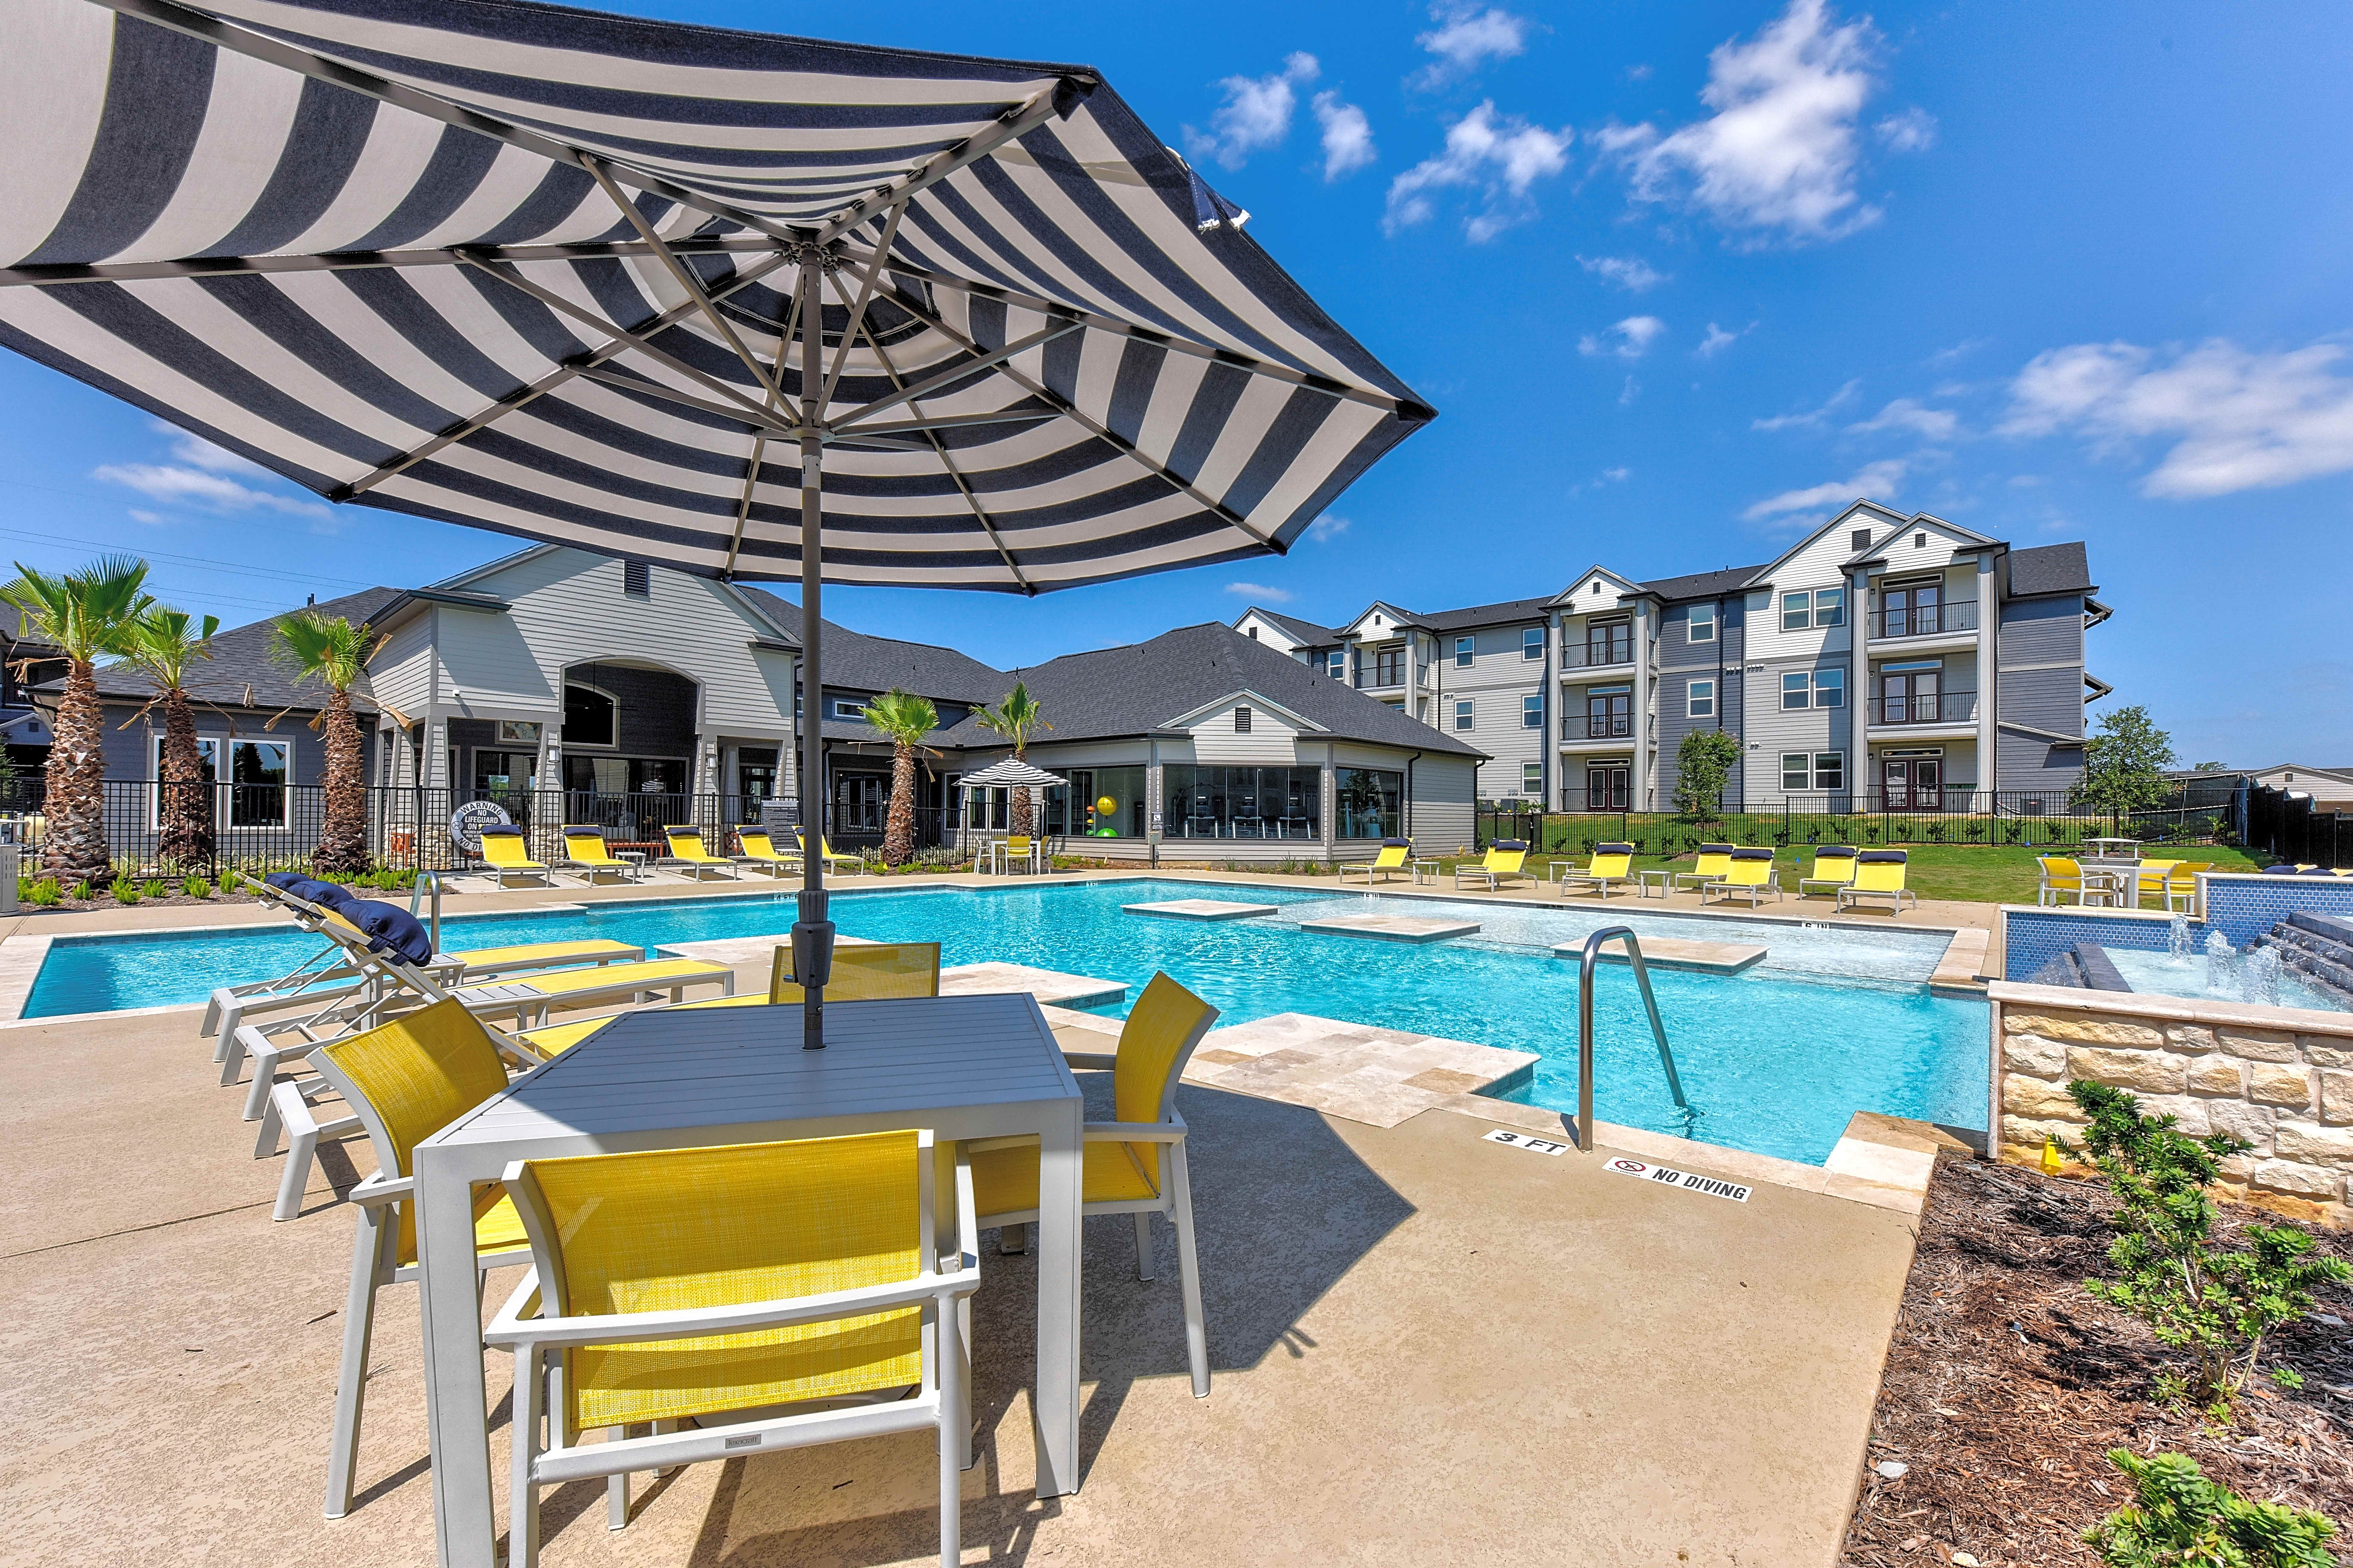 Apartments Near Texas A&M Forest Pines Apartments for Texas A&M University Students in College Station, TX